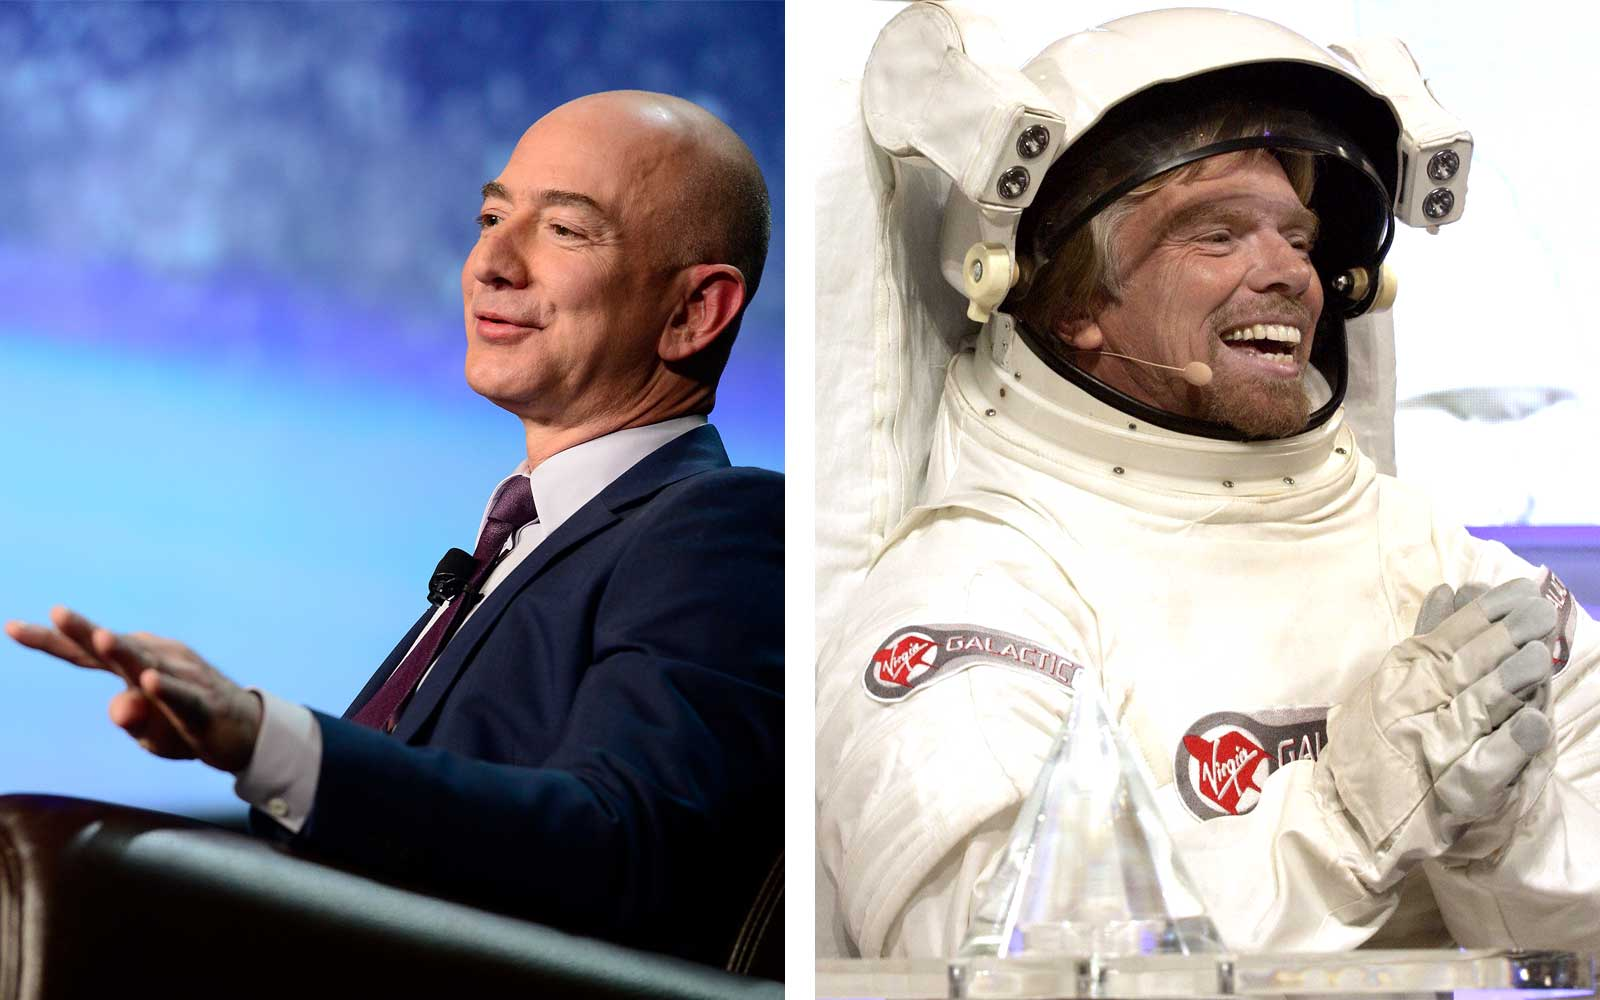 Jeff Bezos and Richard Branson, Space Exploration